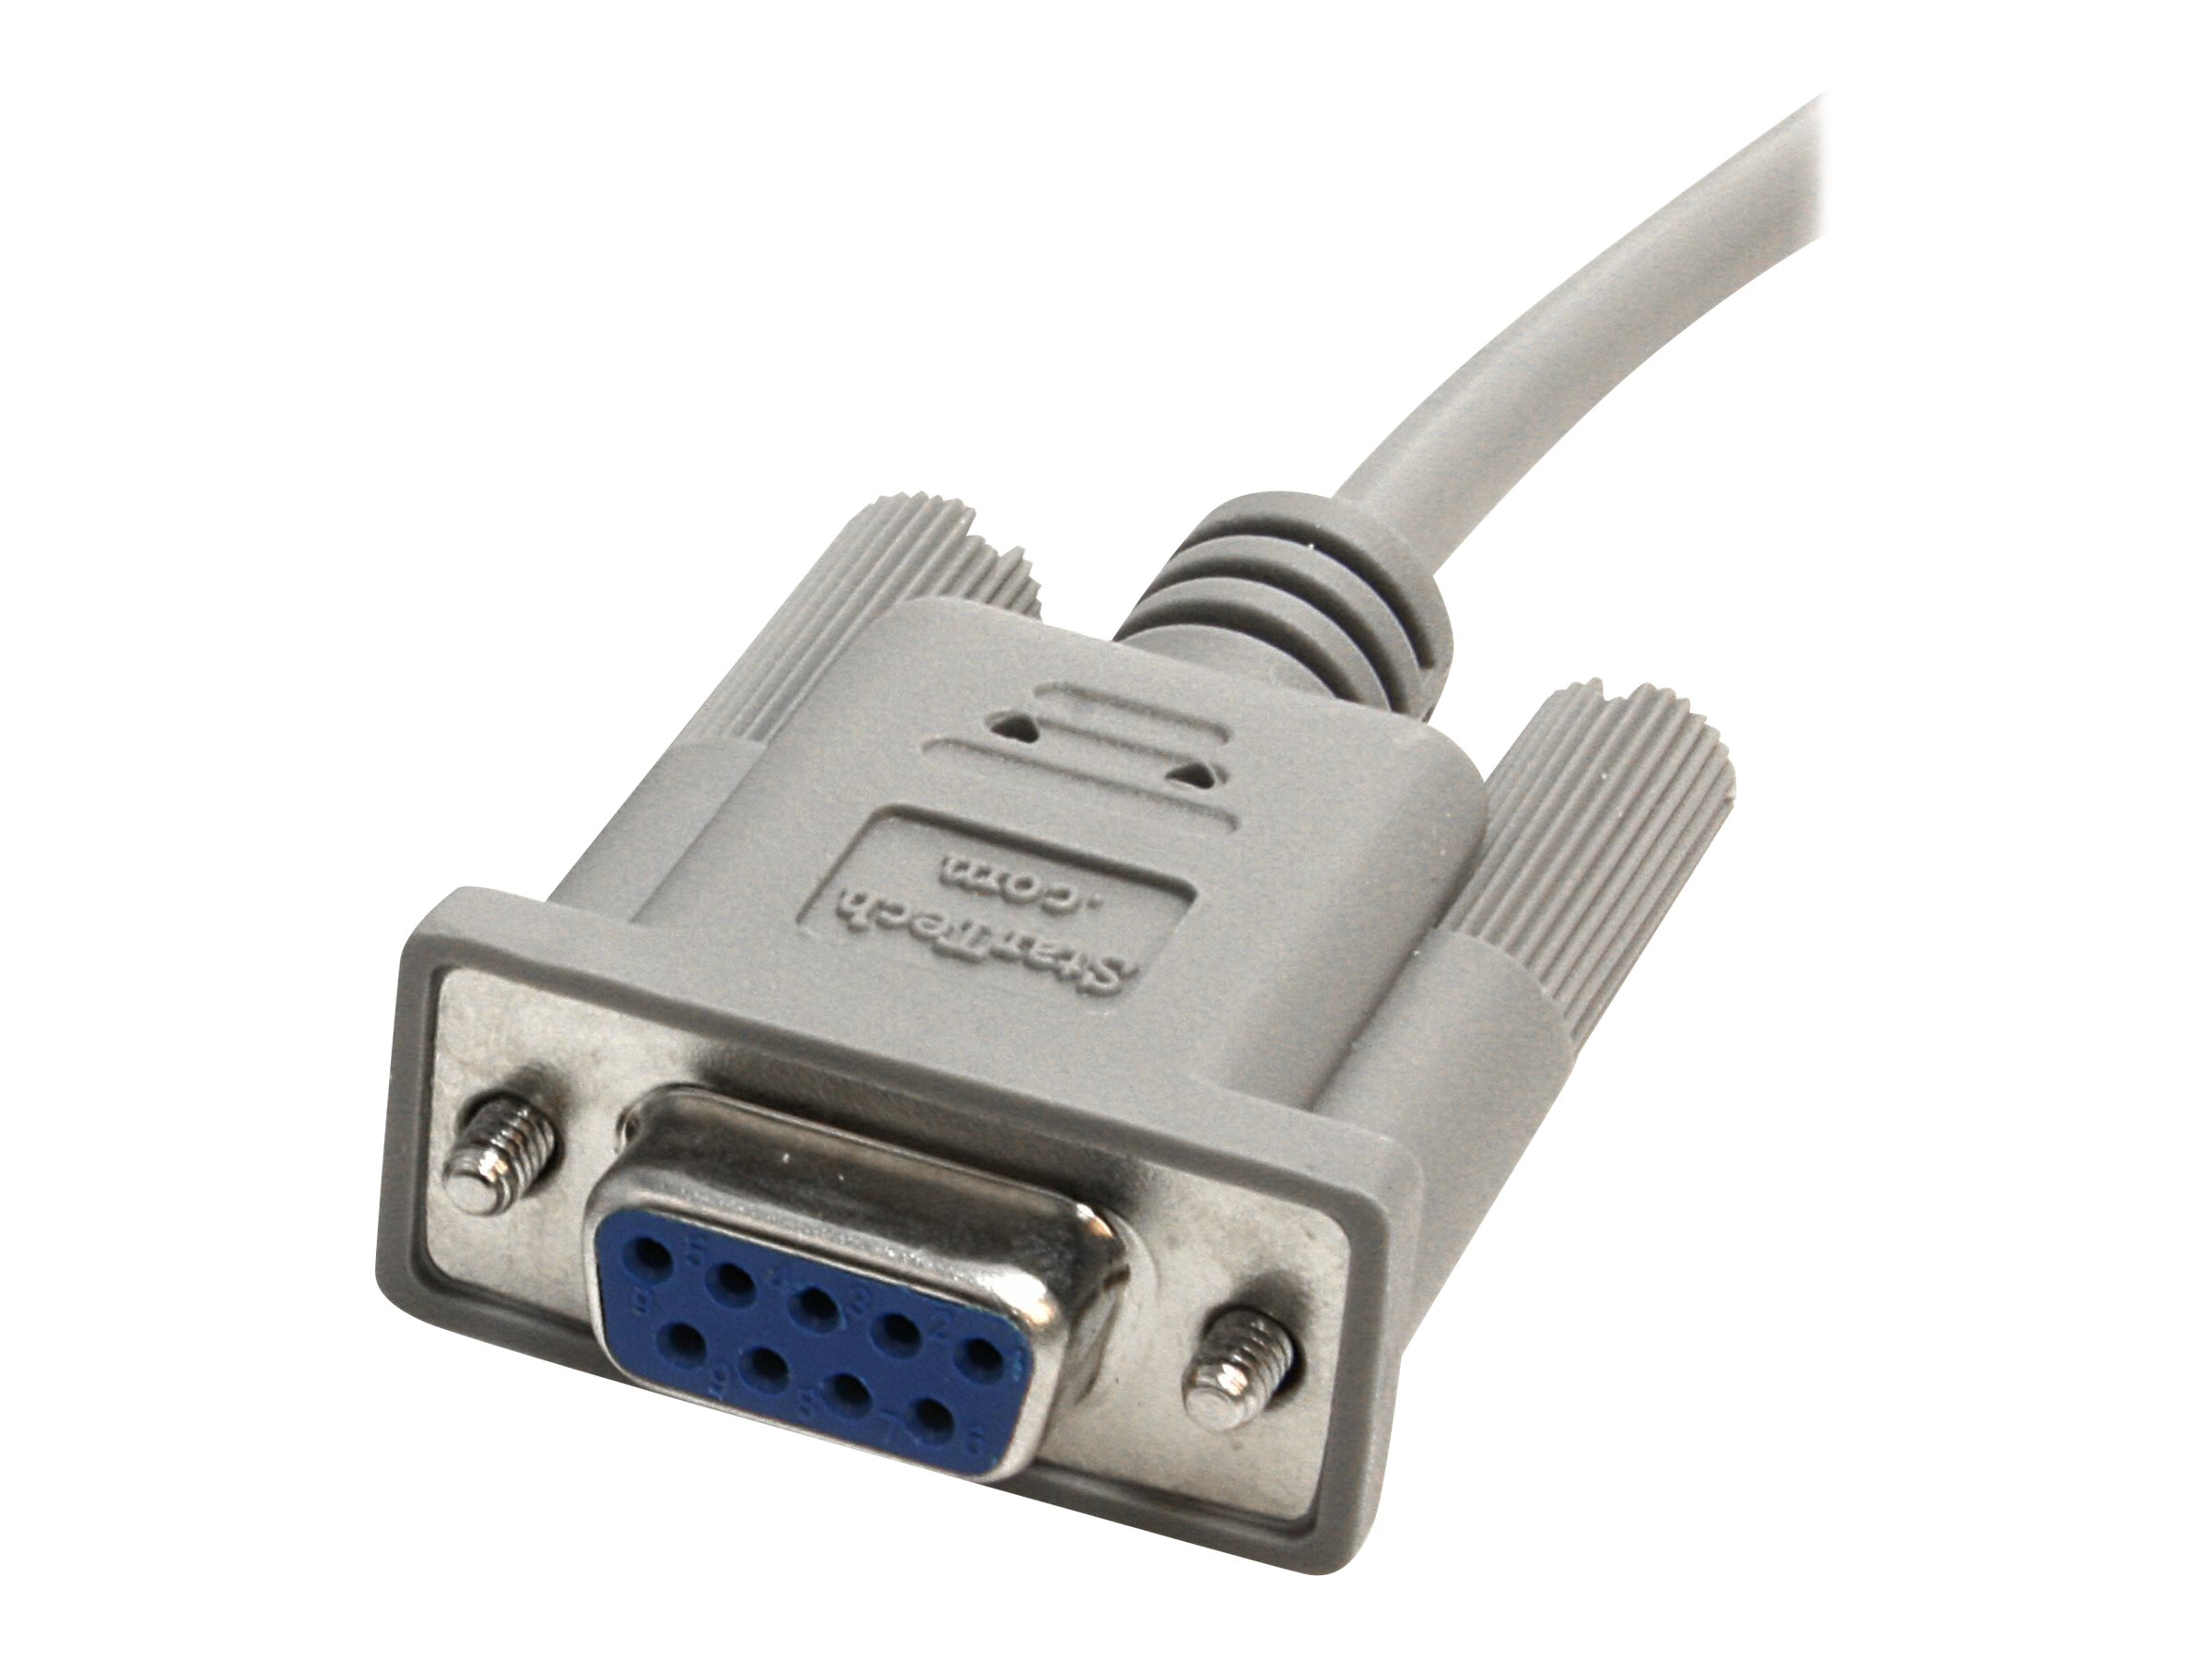 StarTech.com 10' RS232 Serial Null Modem Cable - Null modem cable - DB-9 (F) to DB-9 (F) - 10 ft - SCNM9FF - null modem cable - DB-9 to DB-9 - 10 ft